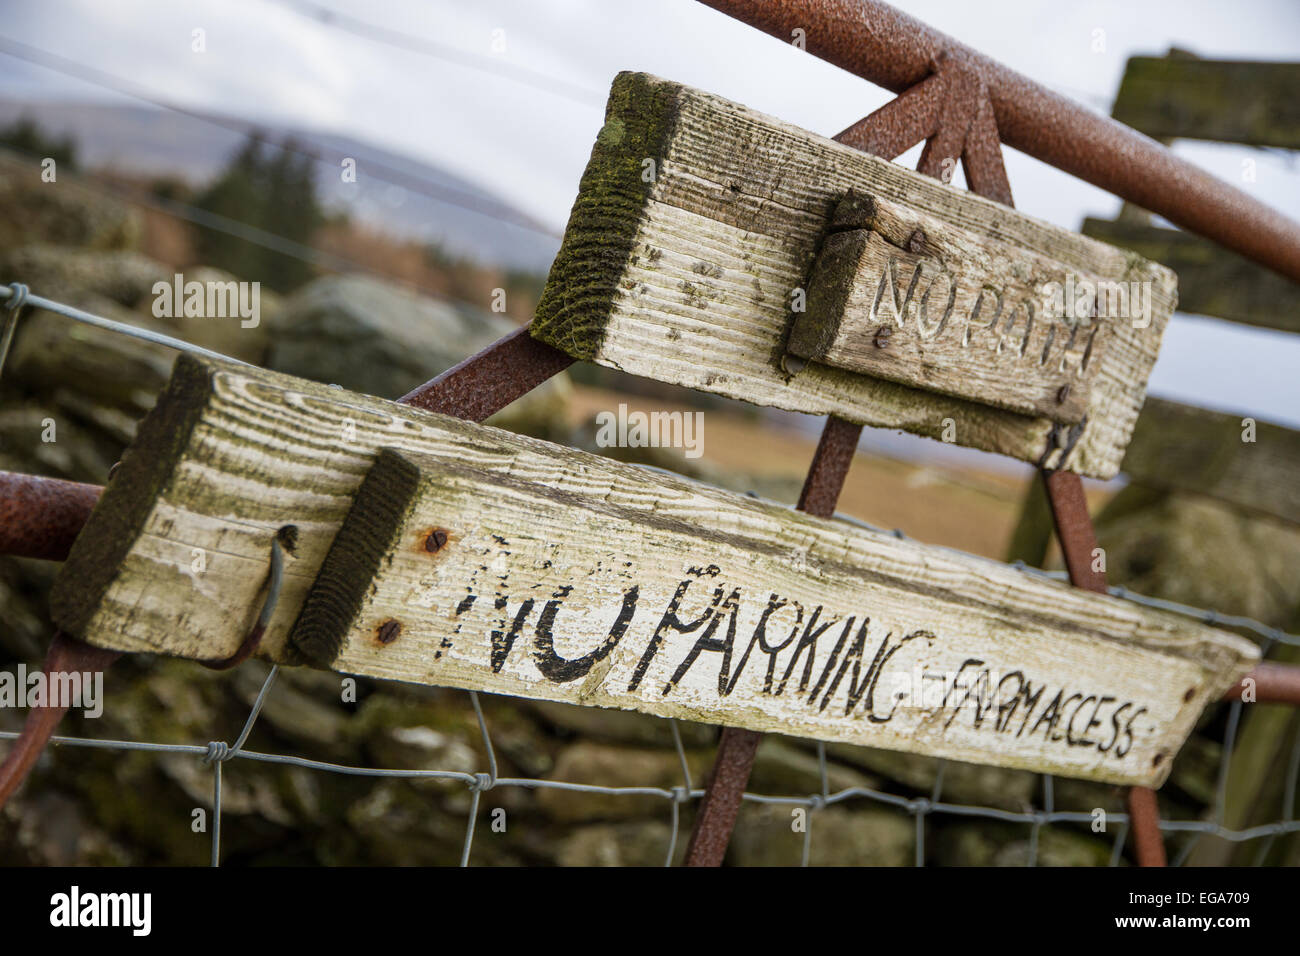 No Parking sign on a farm gate - Stock Image